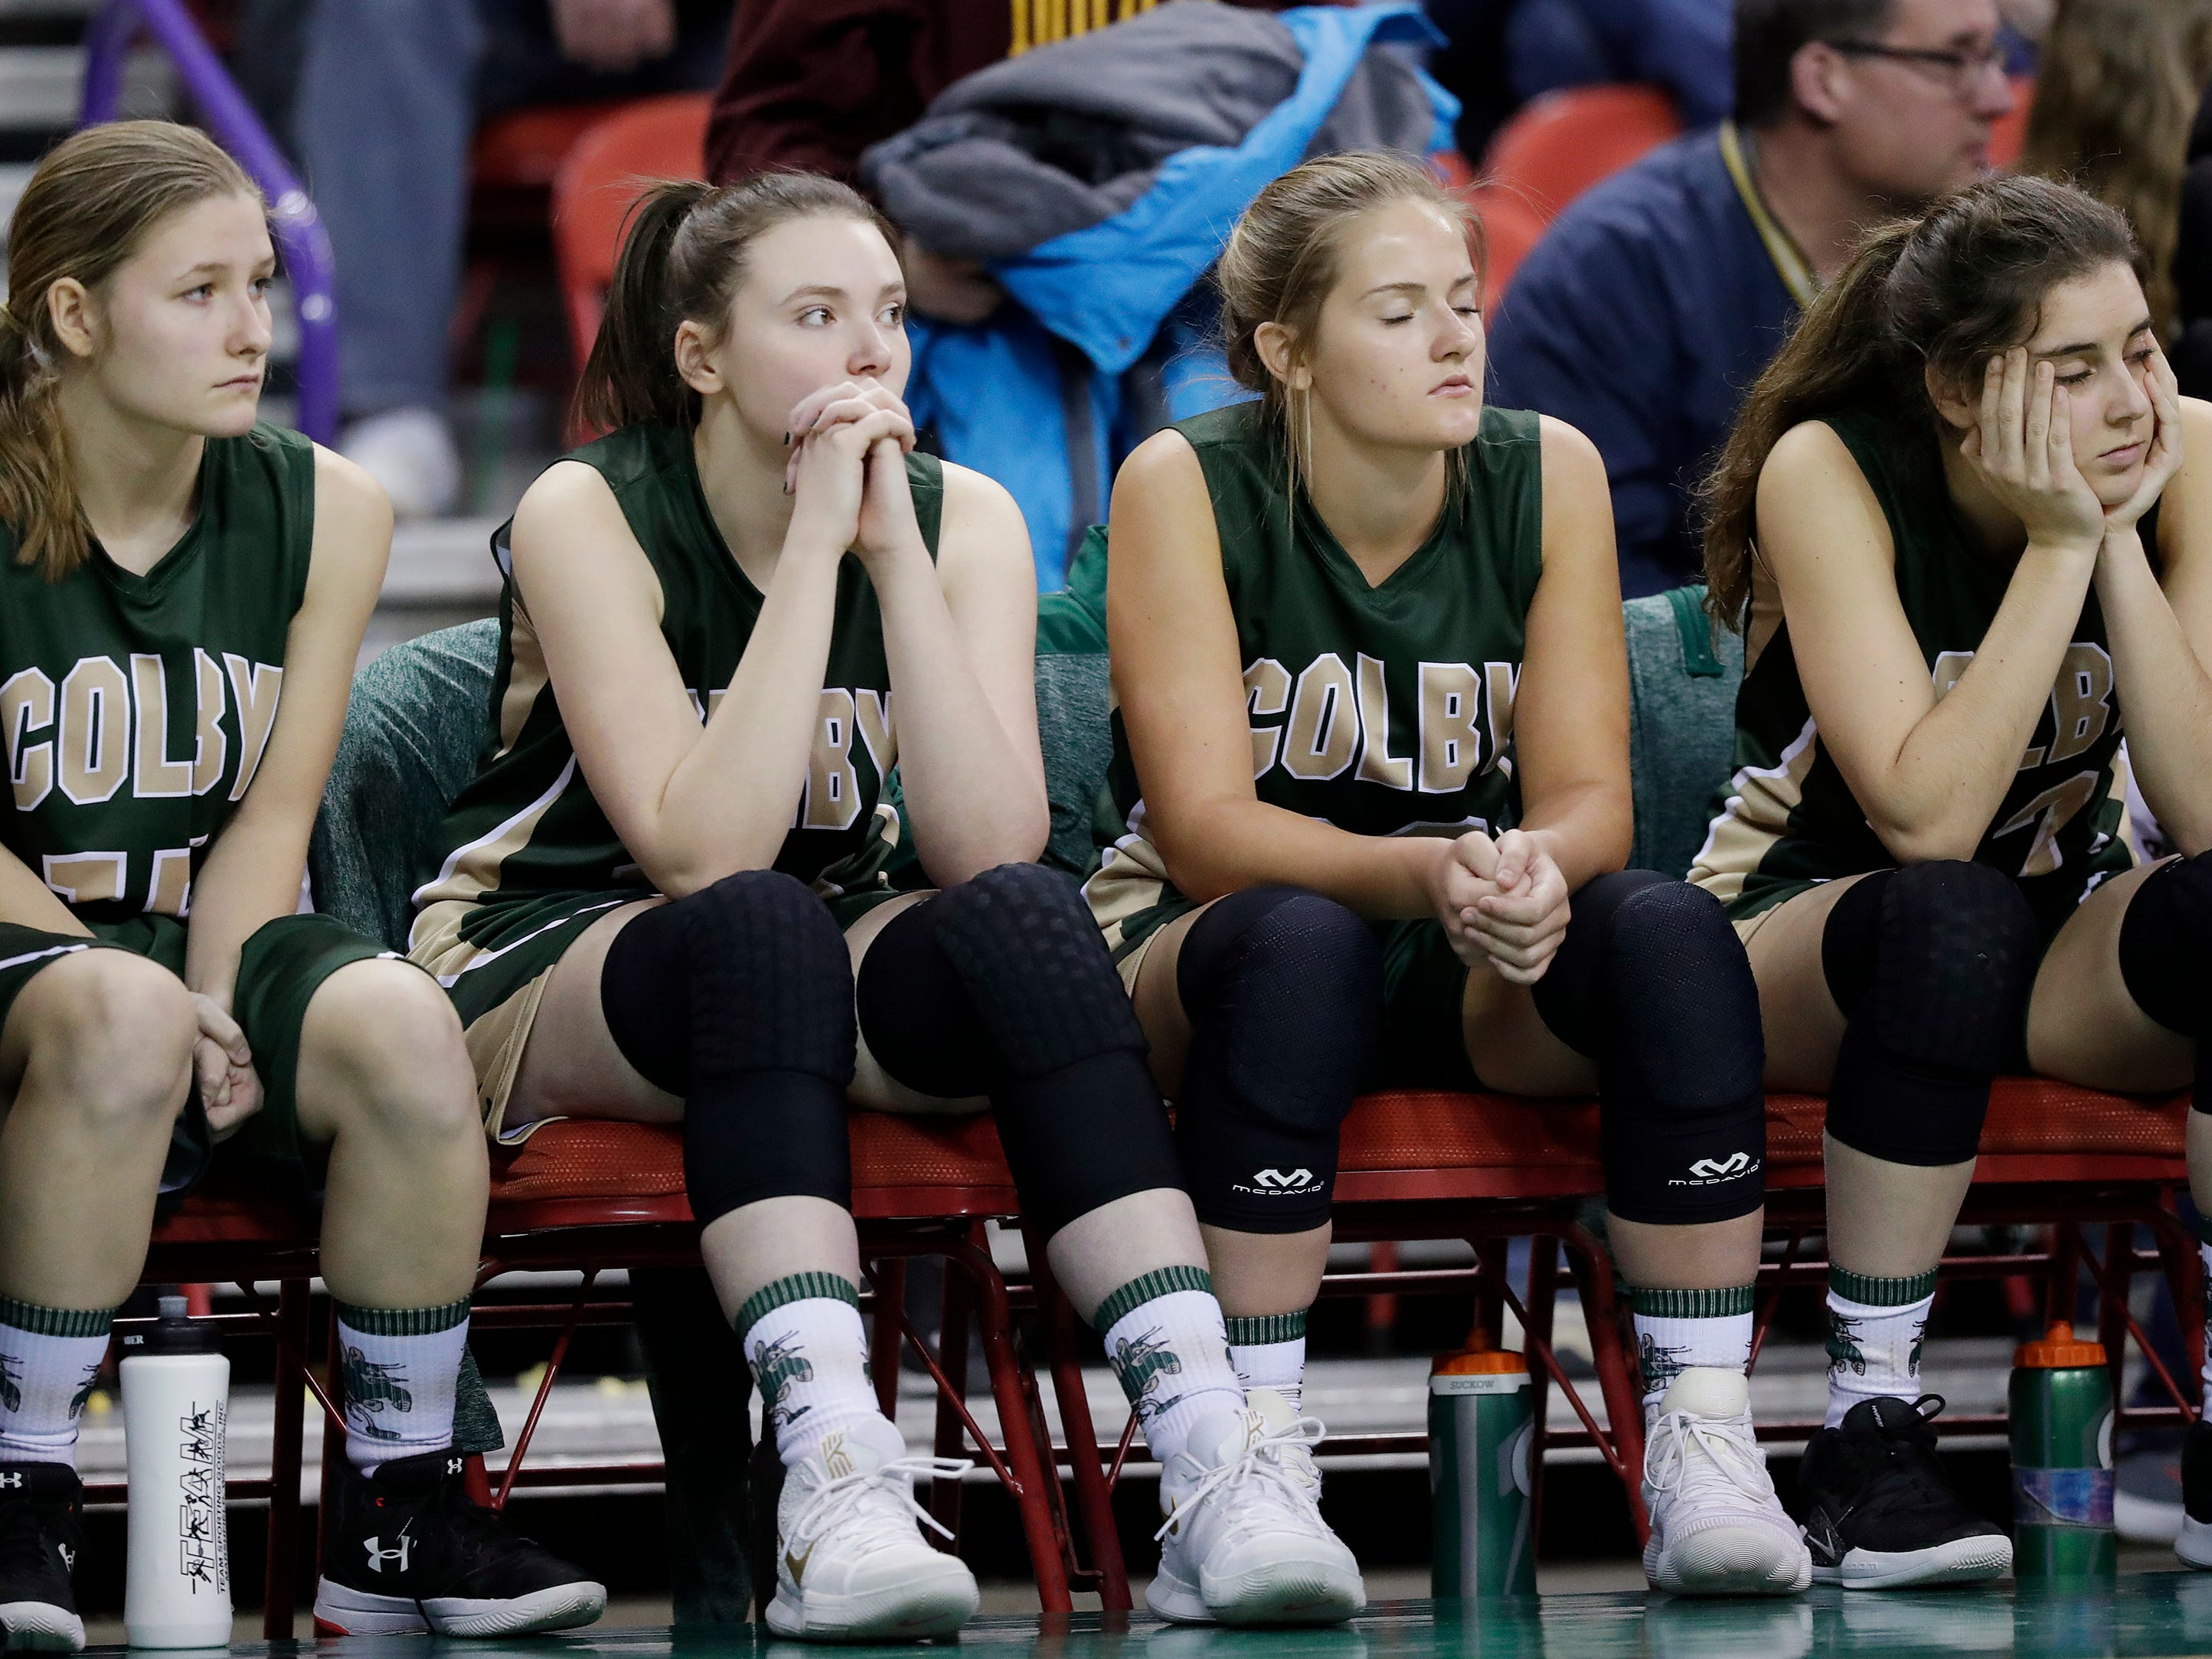 Colby players watch the final minutes of their Division 3 semifinal against Melrose-Mindoro at the WIAA state girls basketball tournament at the Resch Center on Thursday, March 7, 2019, in Ashwaubenon, Wis.